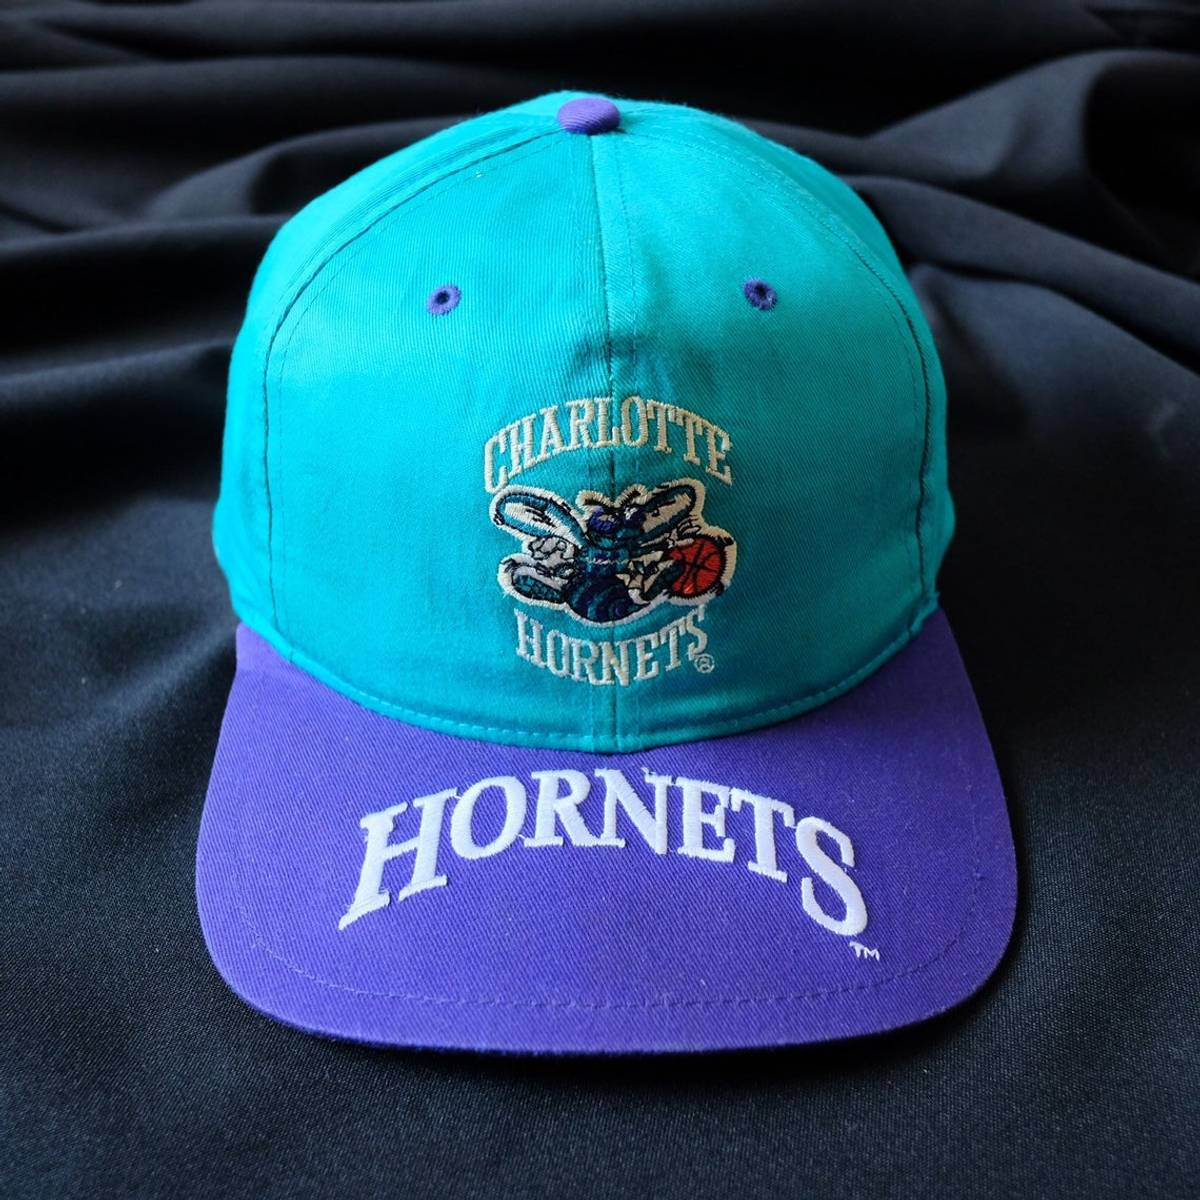 Twins 90s Charlotte Hornets Snapback Nba Hat Cap One Size Grailed